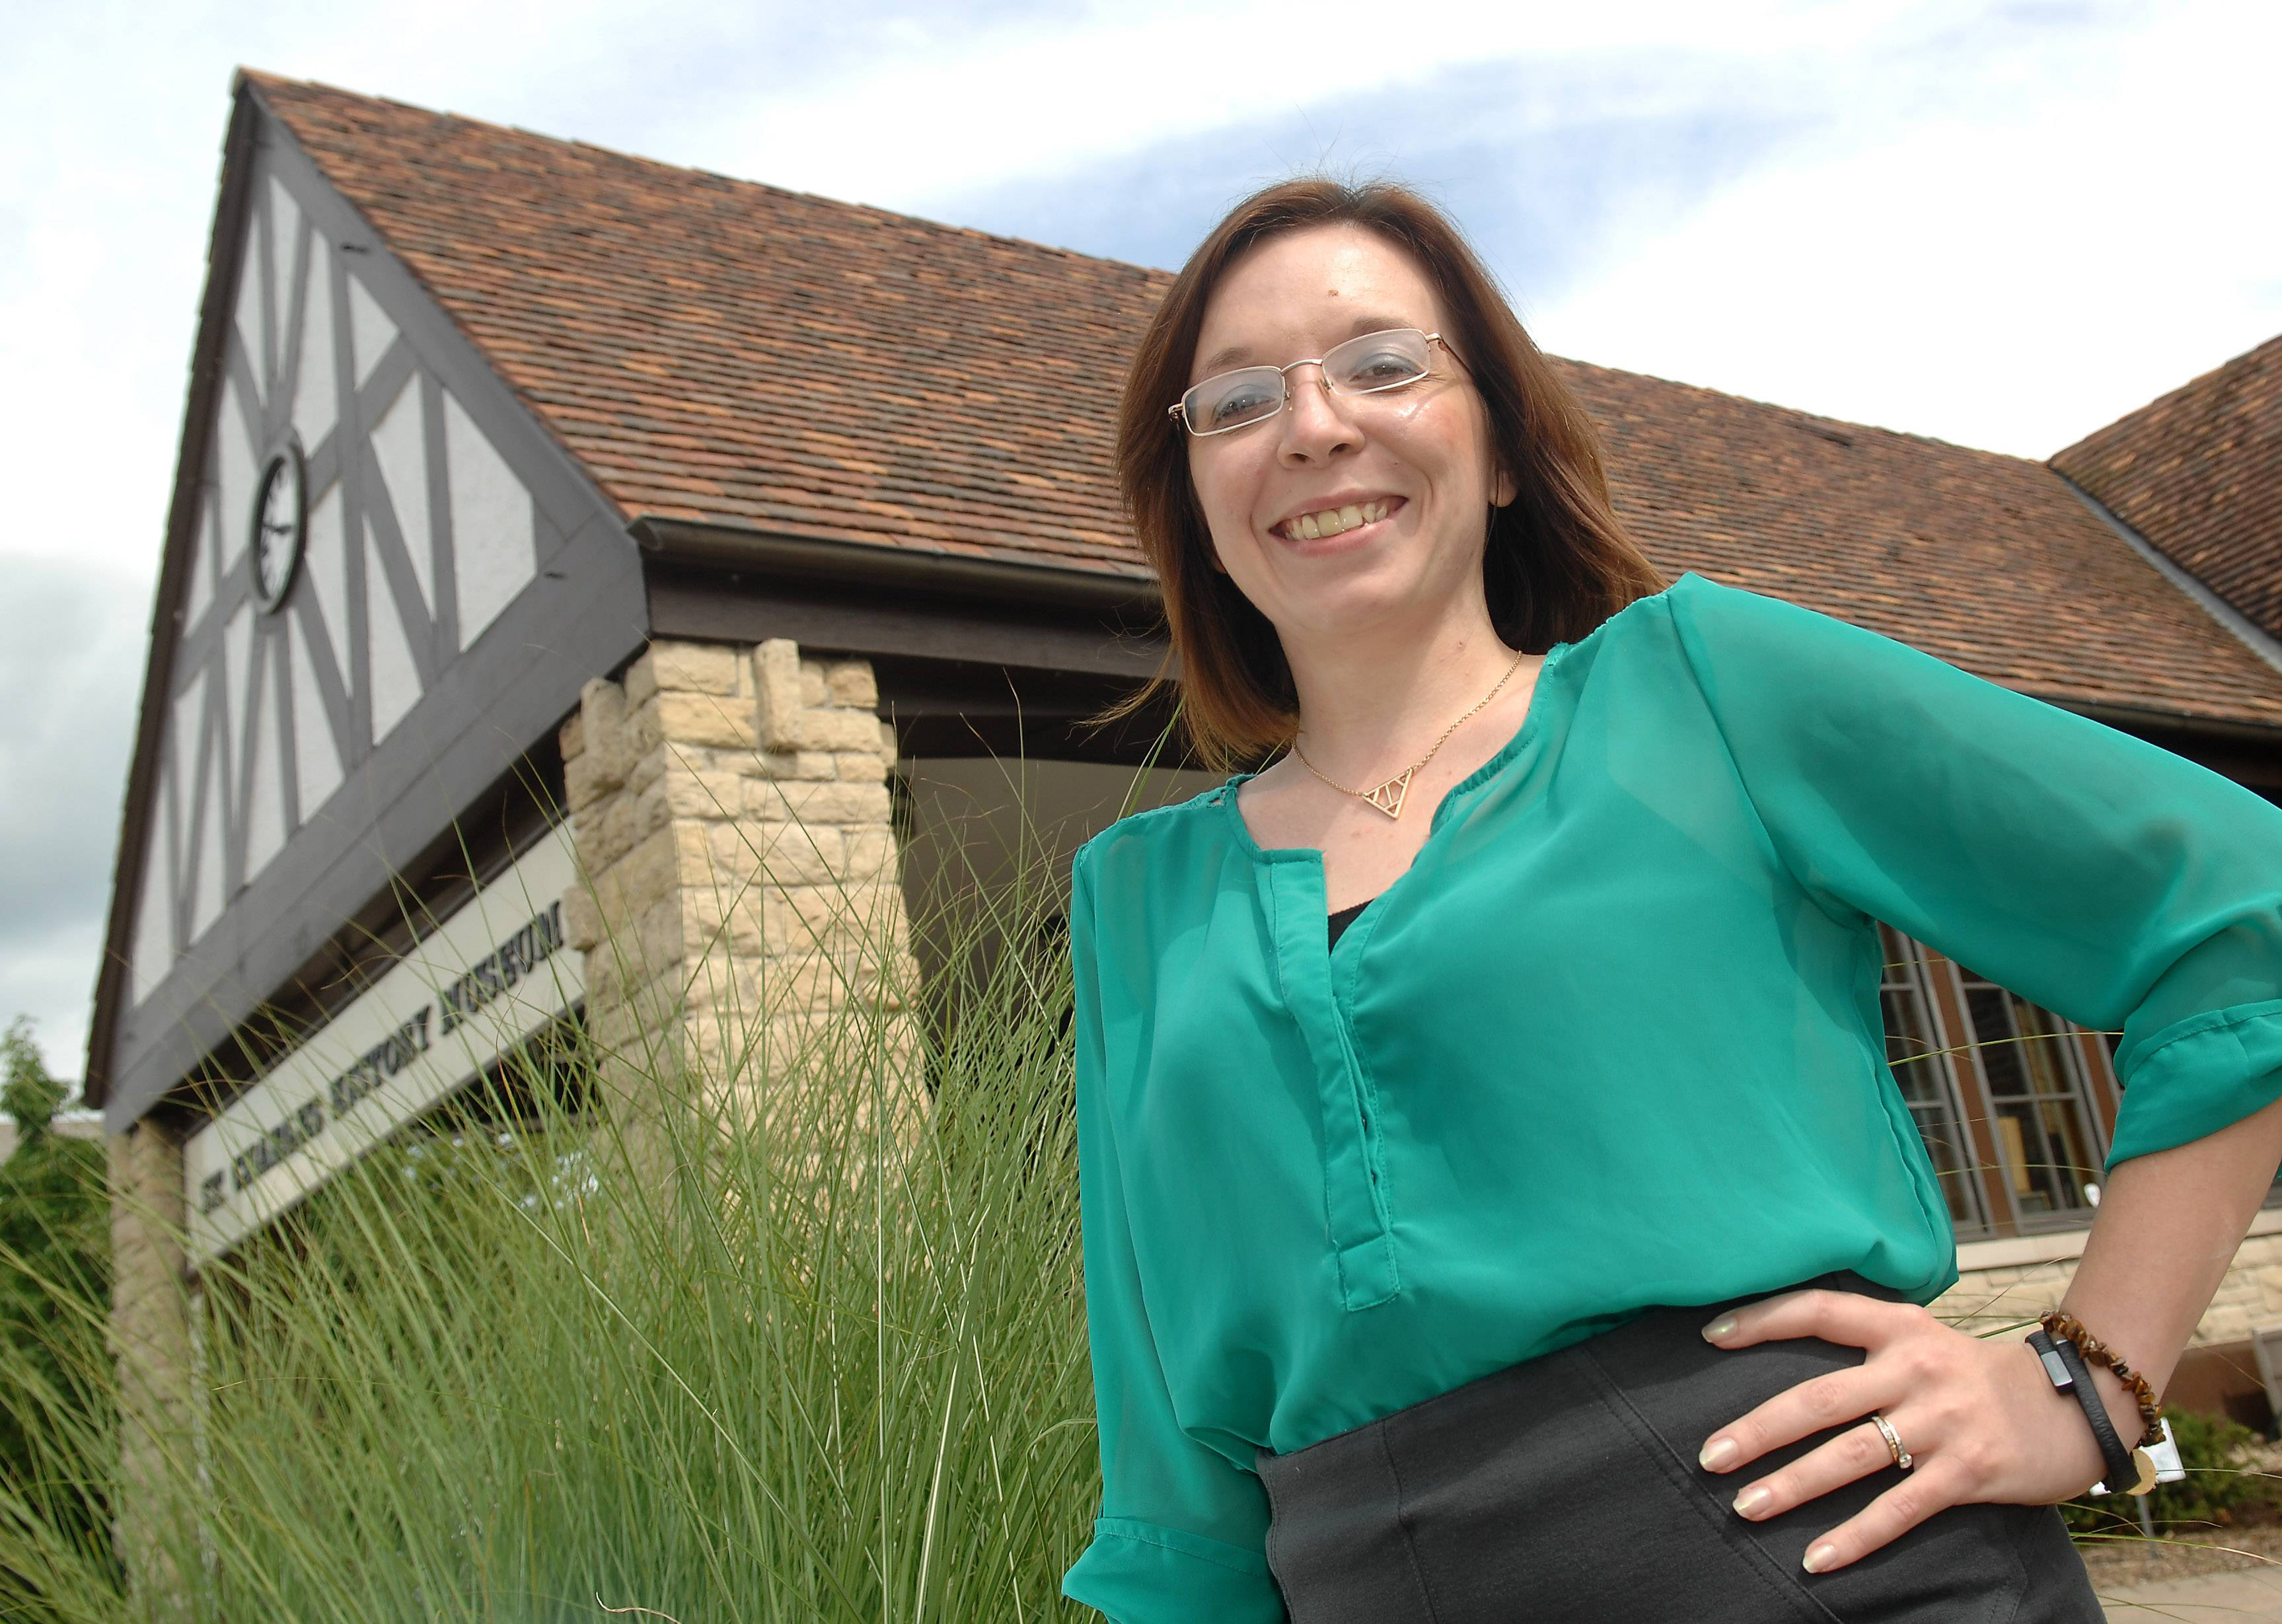 As the St. Charles History Museum expands its outreach efforts, Executive Director Alison Costanzo says it will seek resident feedback during a strategic planning process to refine its scope.